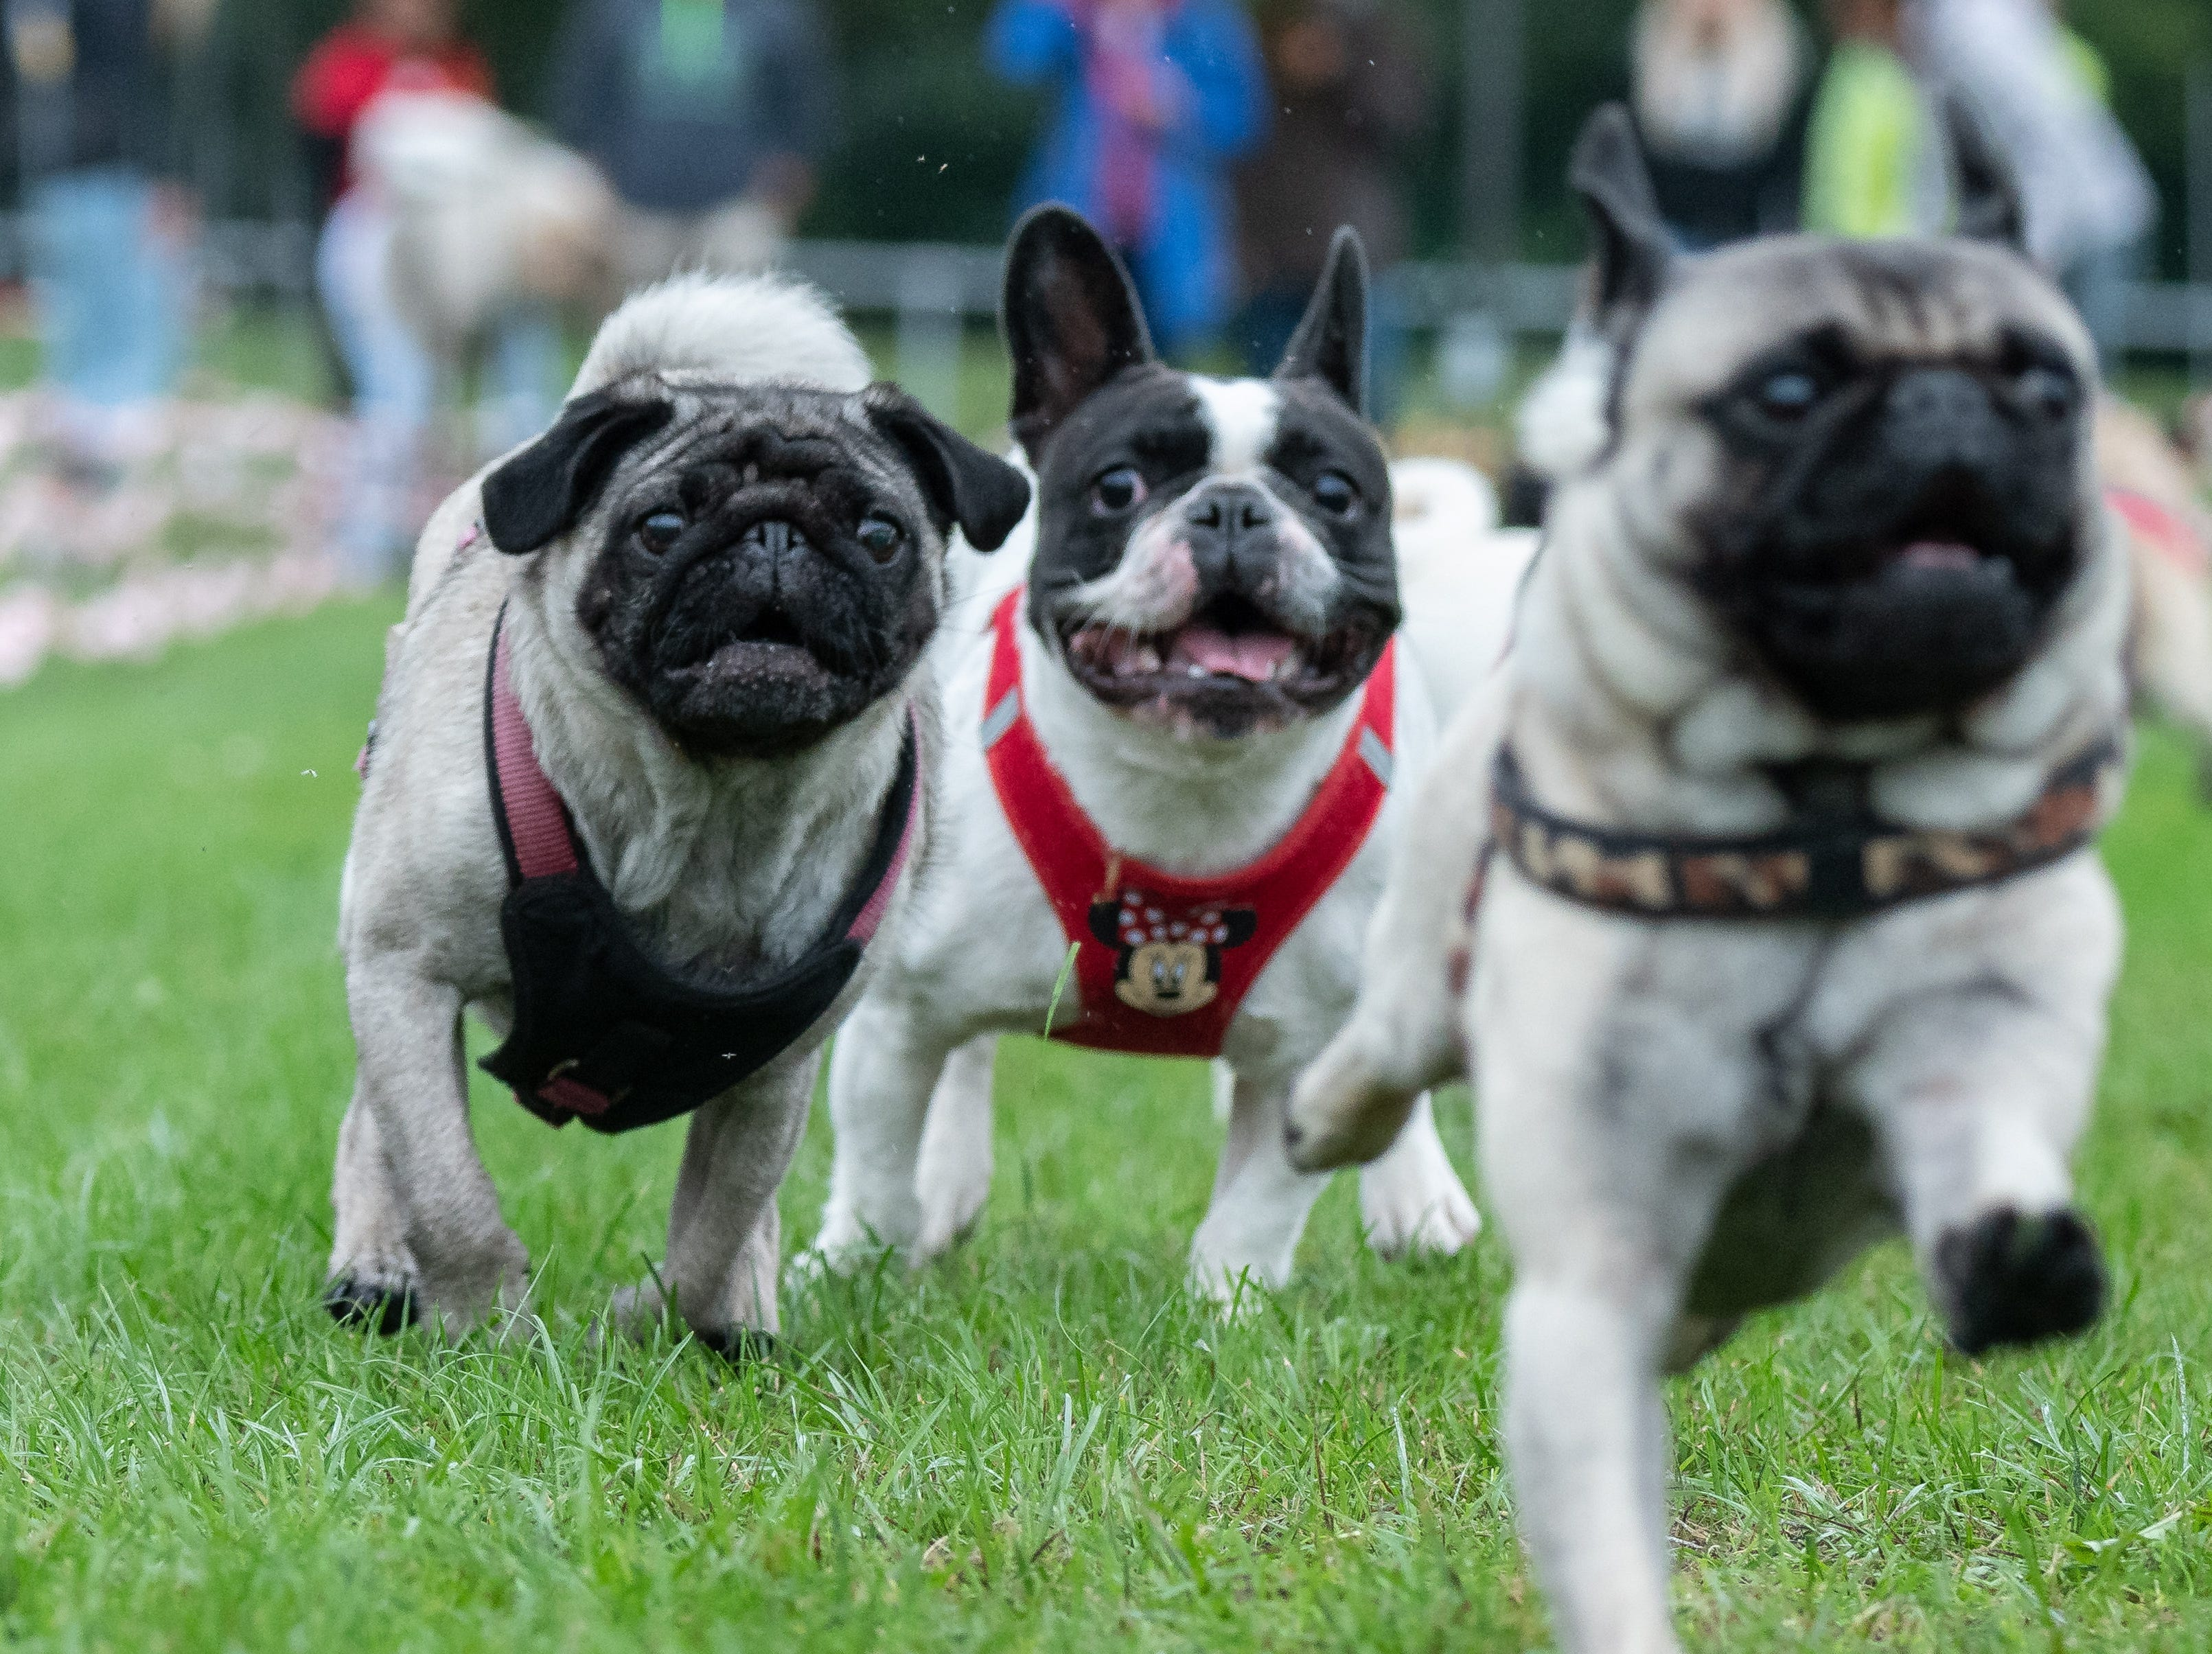 Pugs and French bulldogs run on a grass pitch during the 8th Southern German pug and bulldog race in Wernau,  Germany on Sept. 2, 2018.